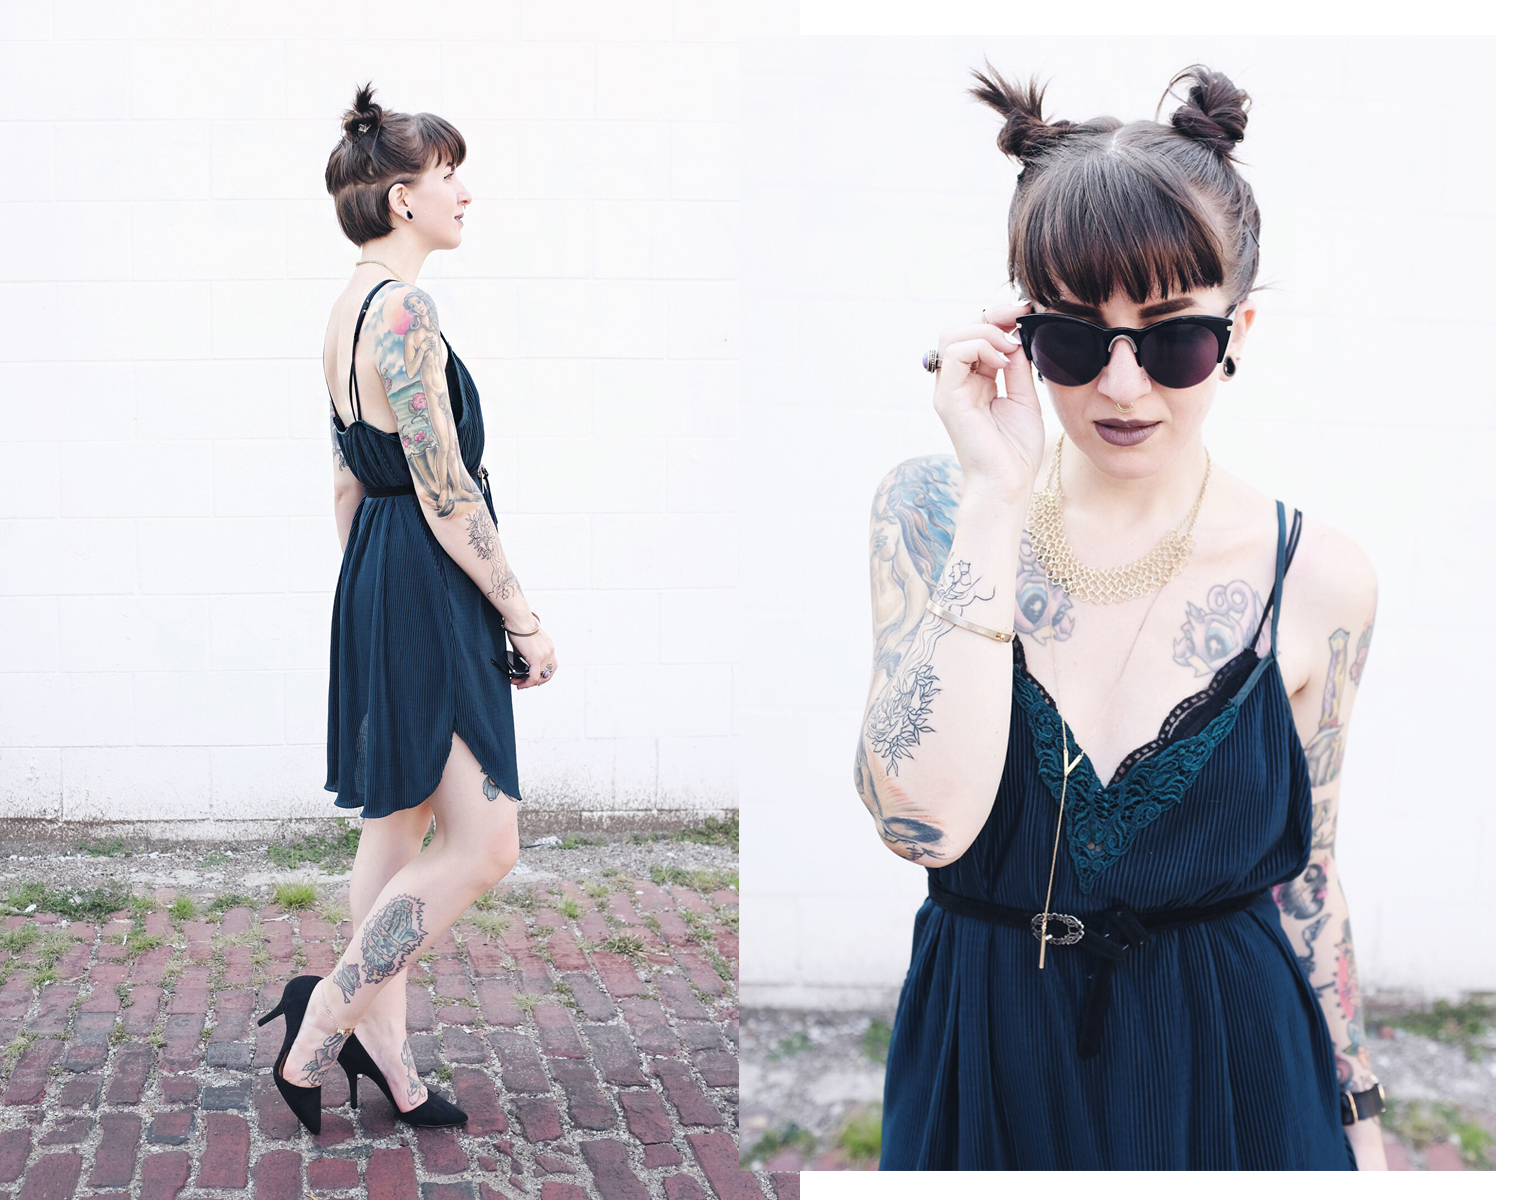 Green Vintage Slip Dress and Mini Hair Buns - Mini Penny Blog